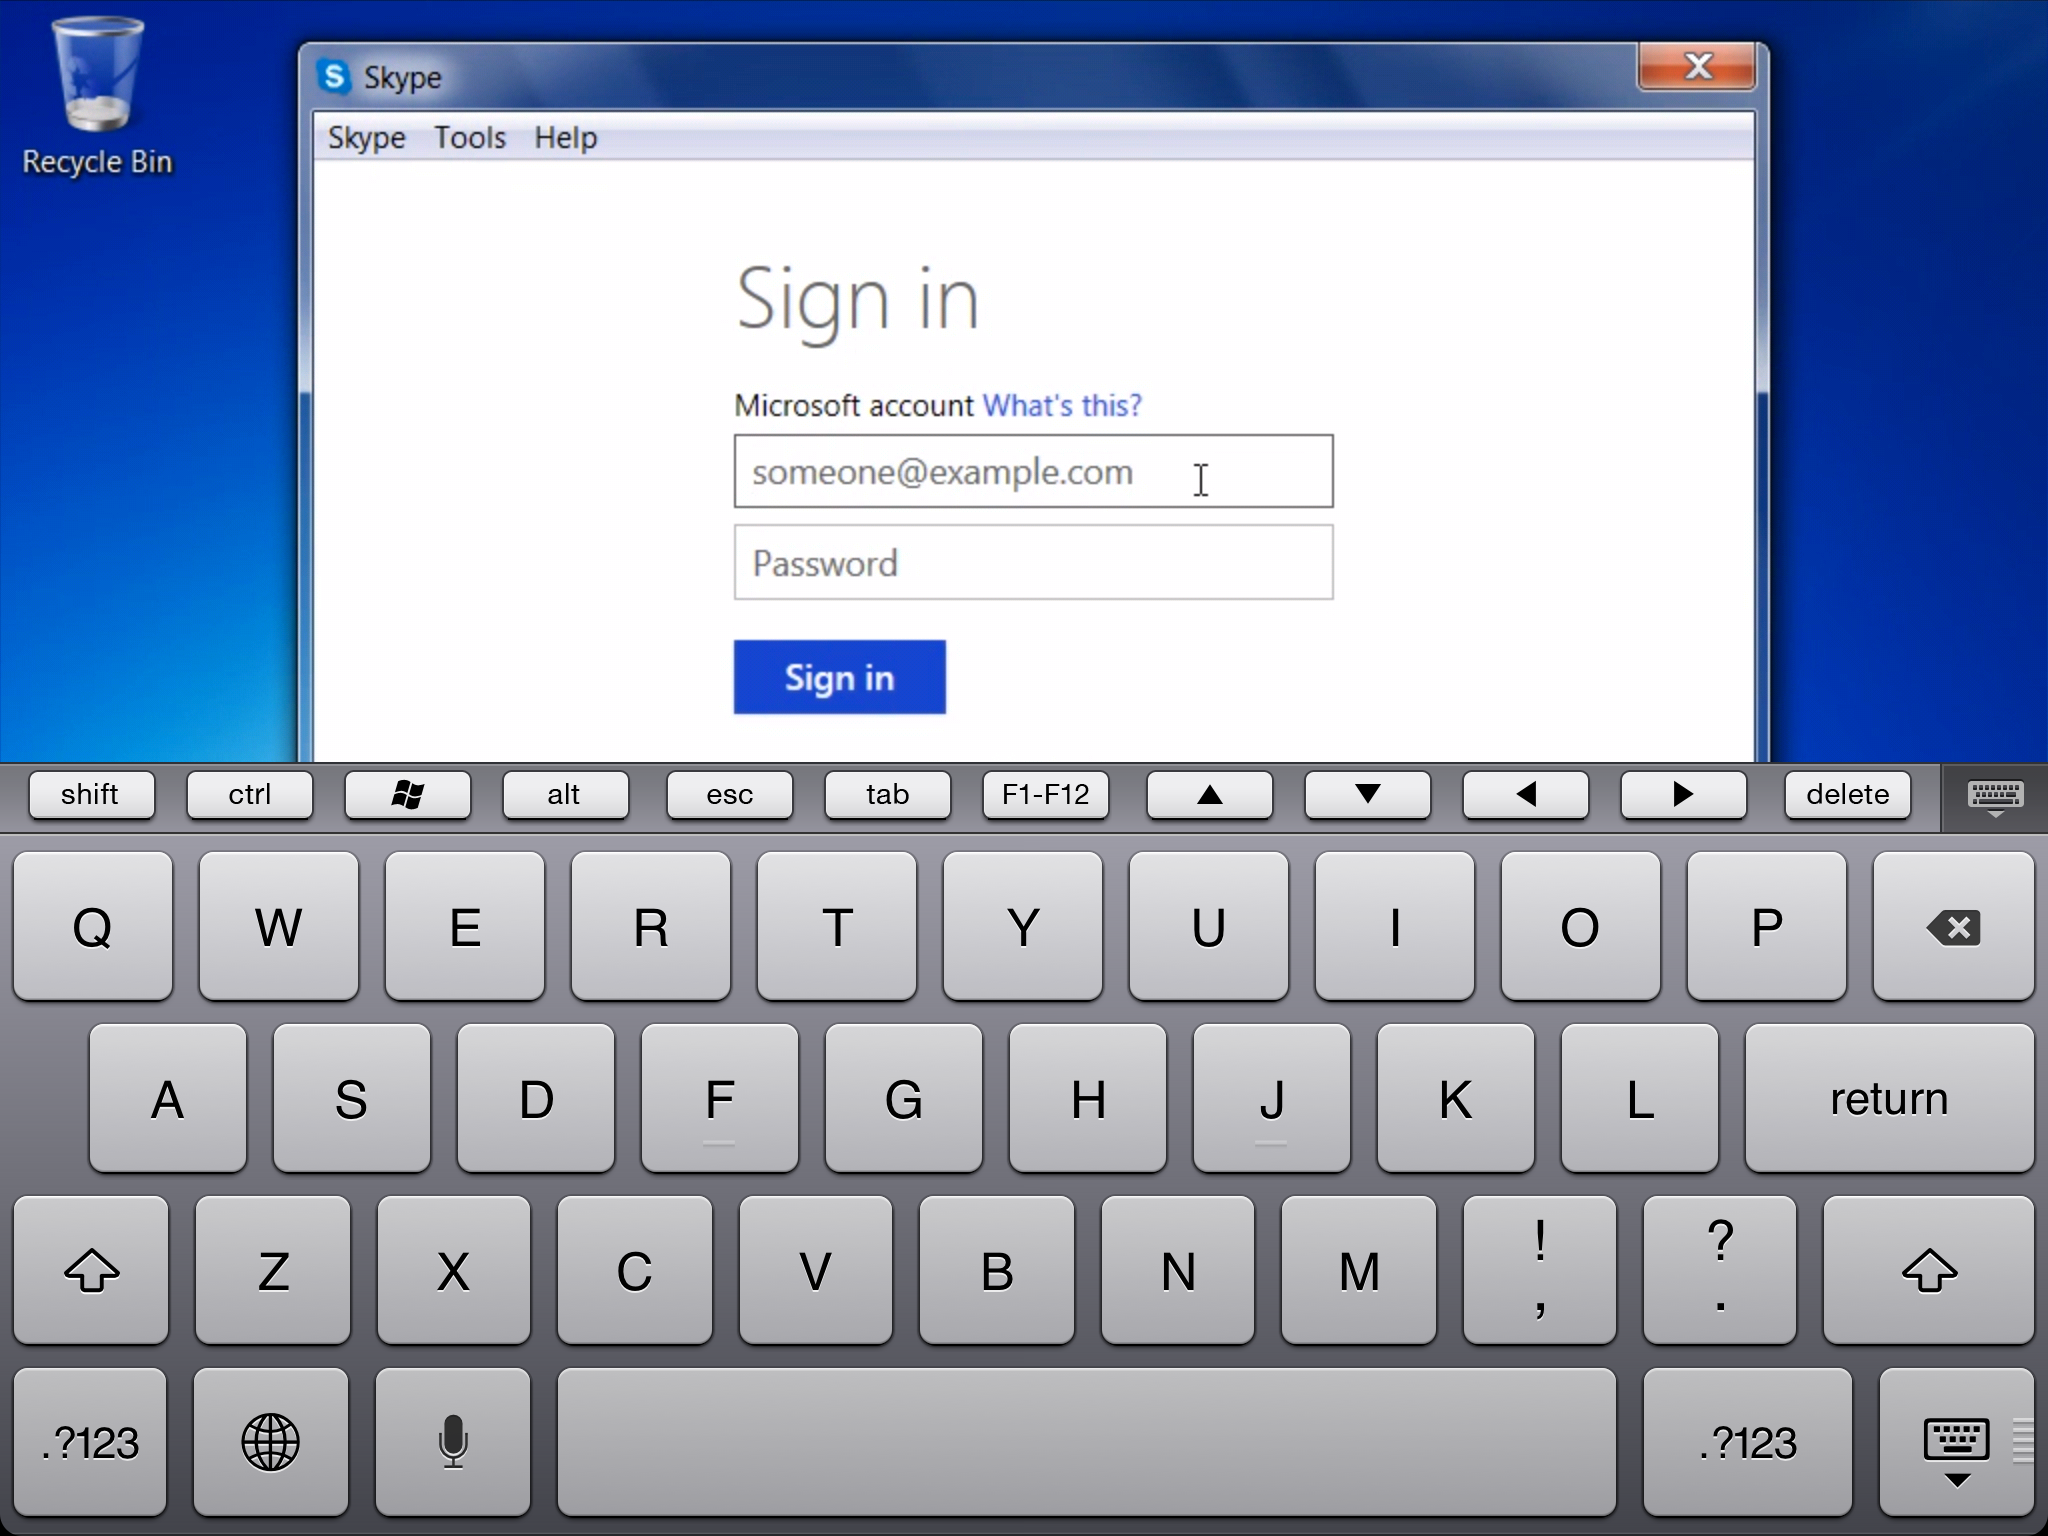 Skype-Login-screen.png